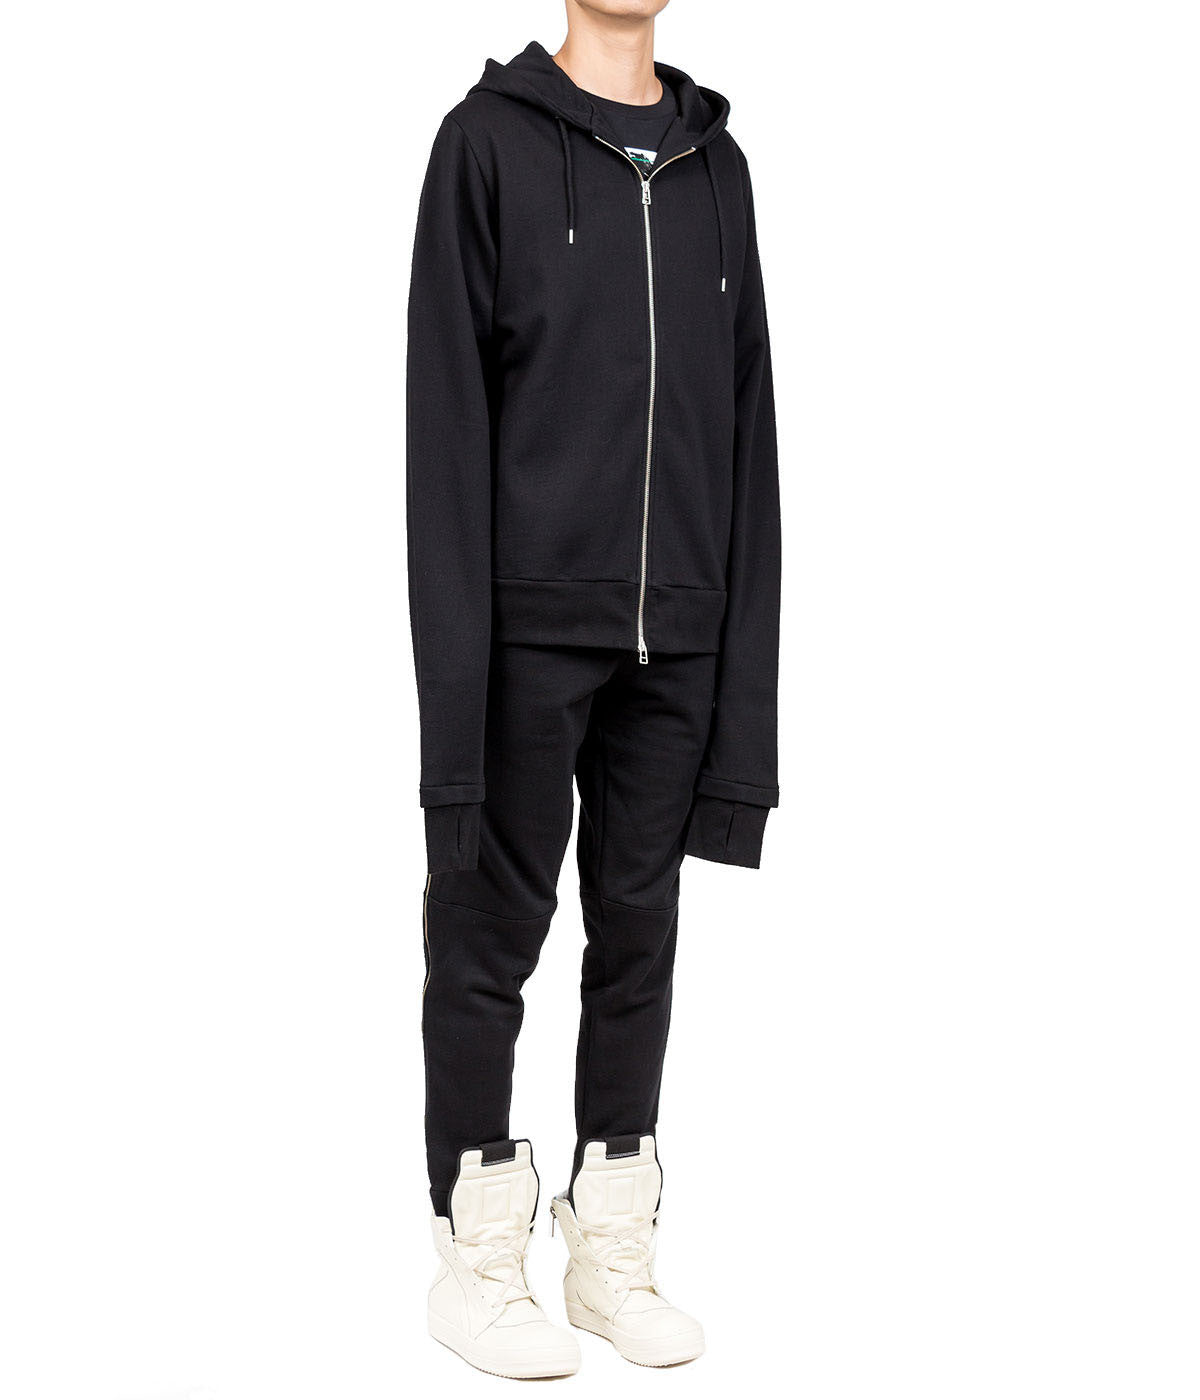 Crew Hoodie with Extended Arms